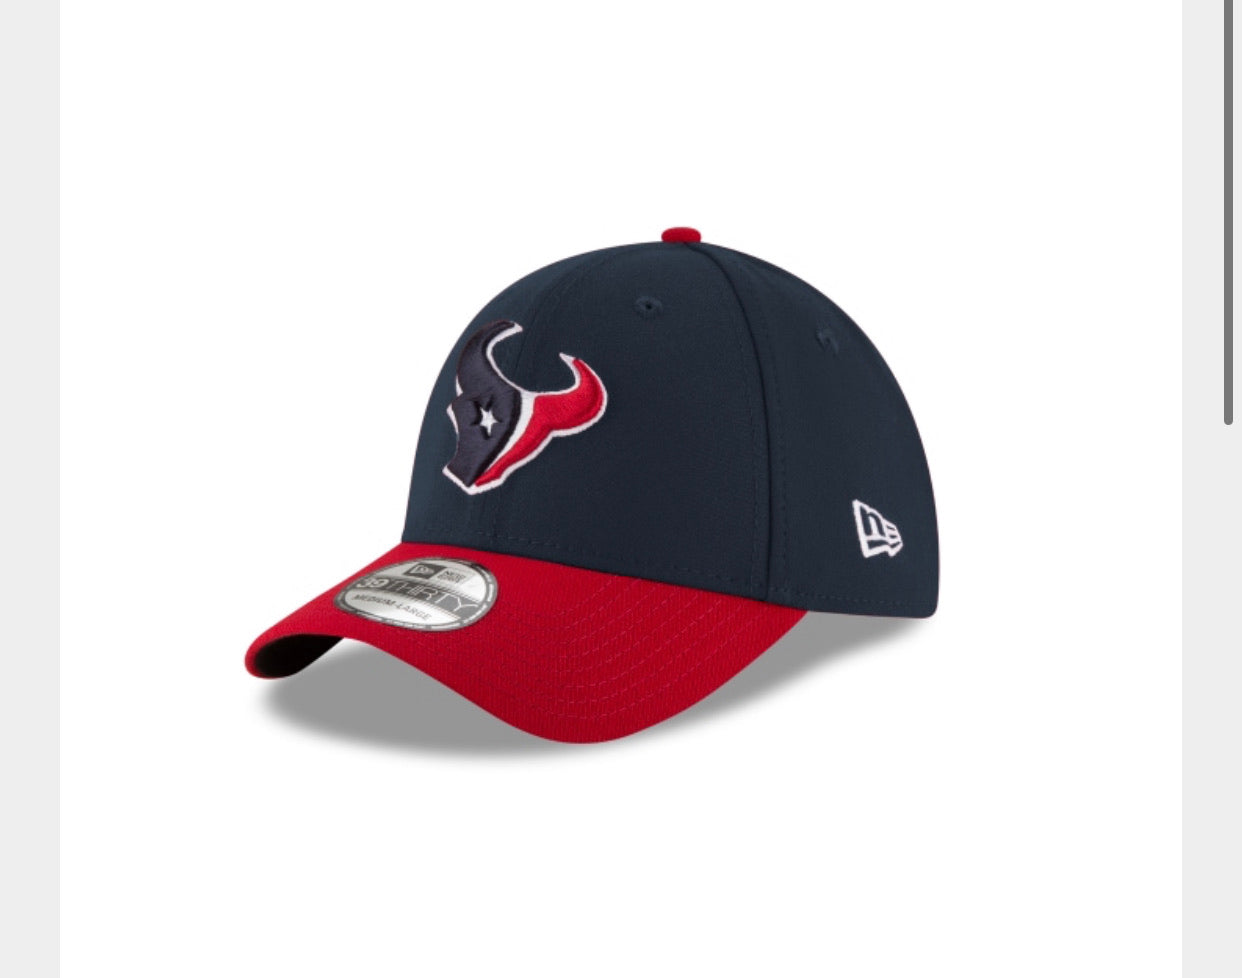 Houston Texans New Era CLASSIC Hat - AtlanticCoastSports